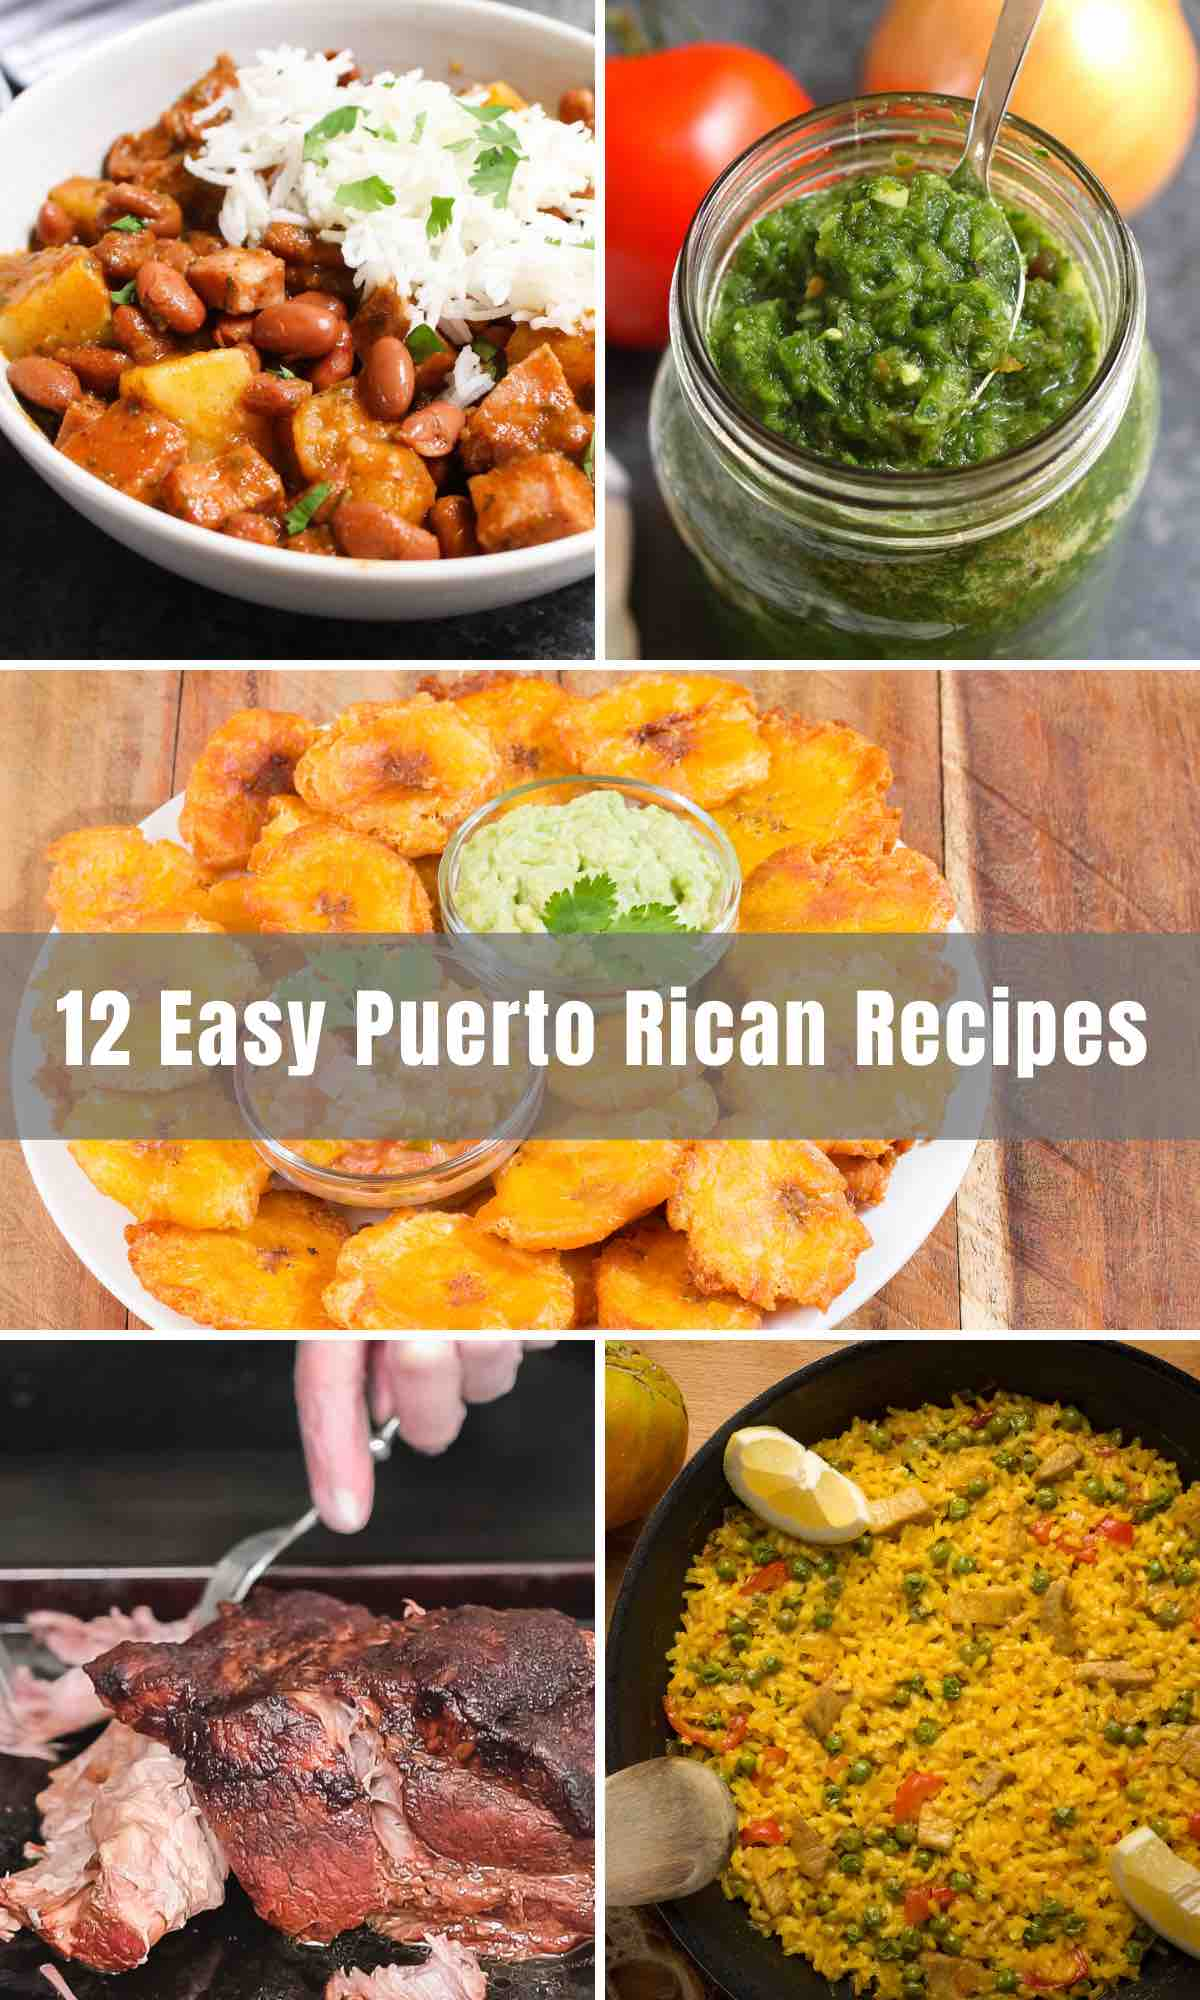 Puerto Rican Food is full of spice and herbs with a combination of flavors beyond your wildest dreams. We've collected 12 Easy Puerto Rican Recipes that are authentic and incredibly delicious. Take a deep dive into these dishes and walk into the richness of Puerto Rican cuisines.